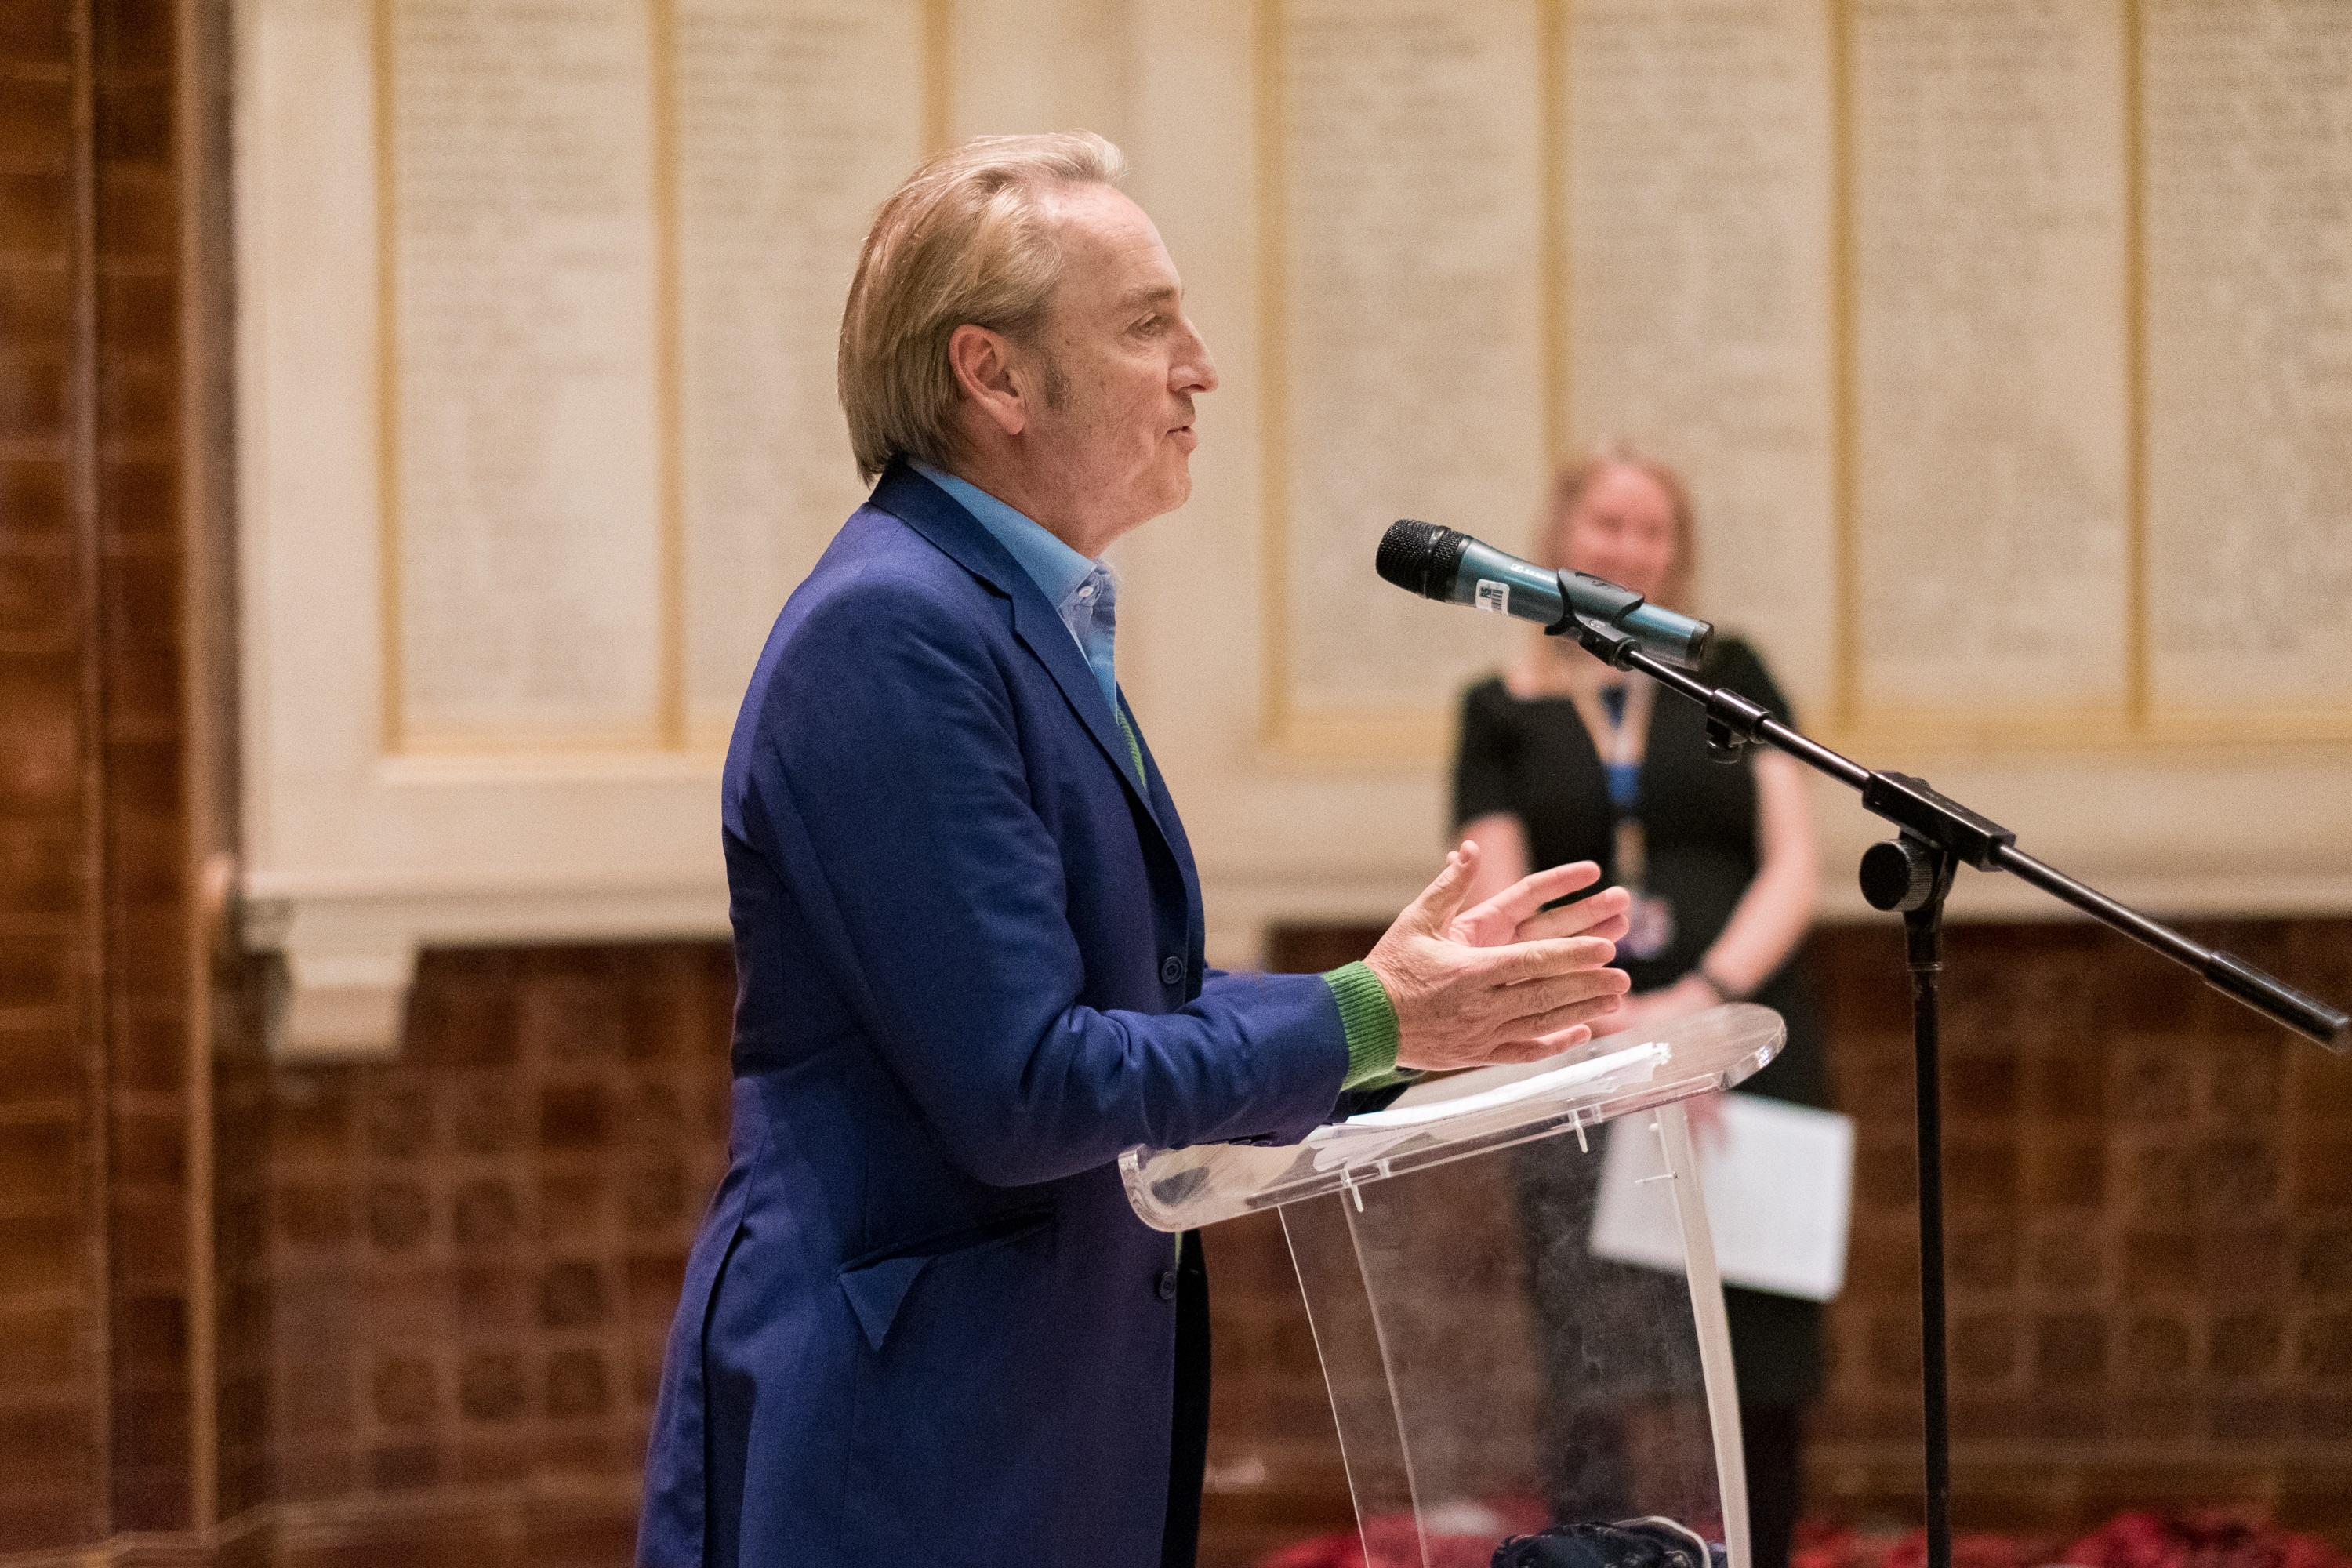 Art dealer and broadcaster Philip Mould OBE opens the exhibition